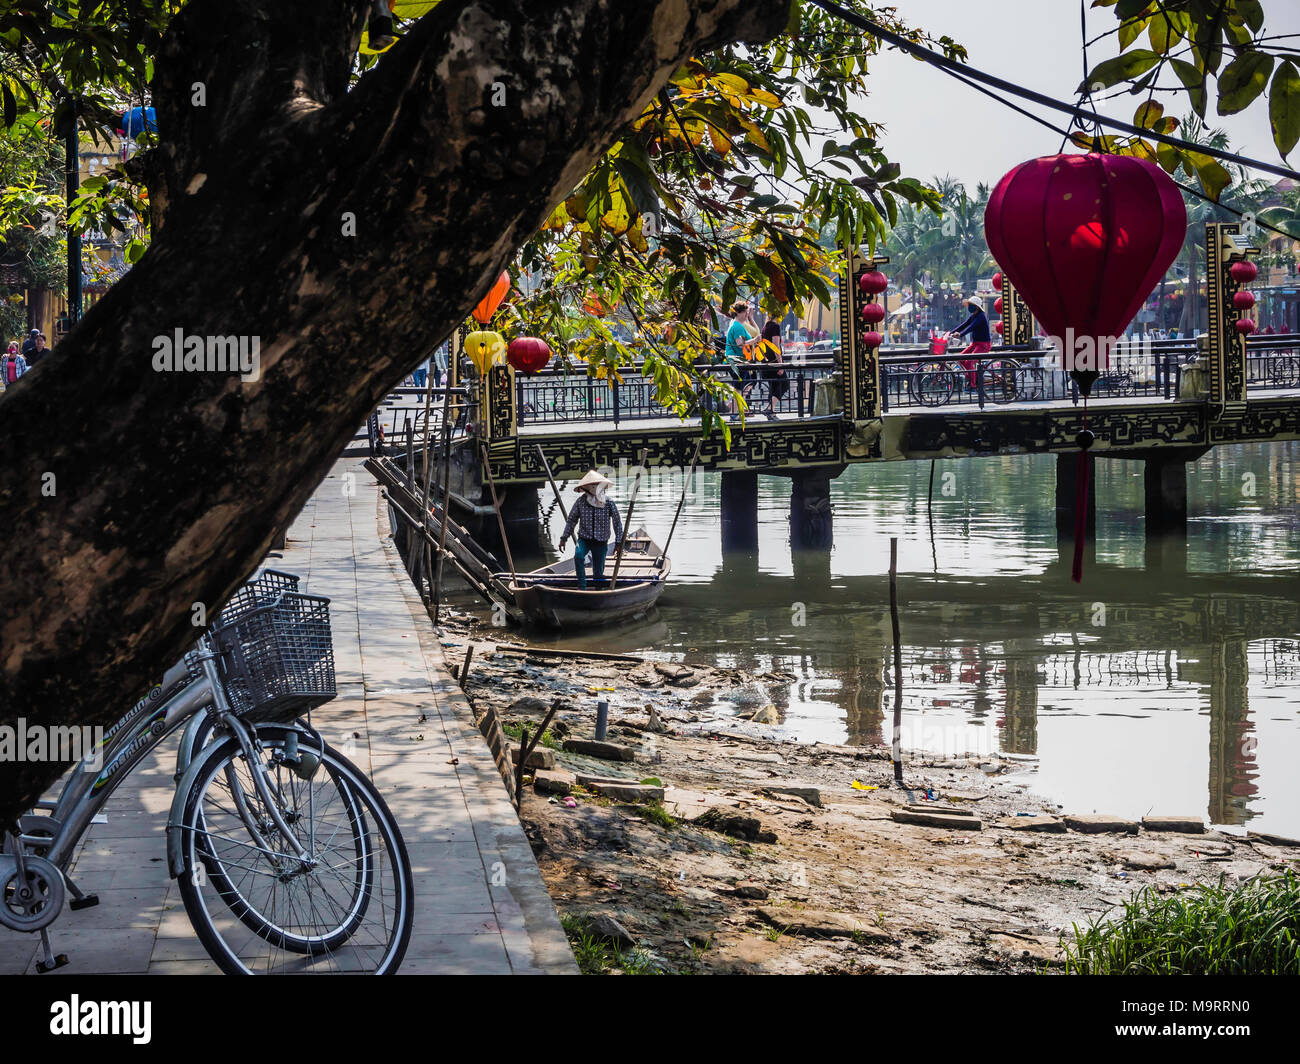 Colourful lanterns hanging in trees alongside riverbank in Hoi An, Vietnam - Stock Image